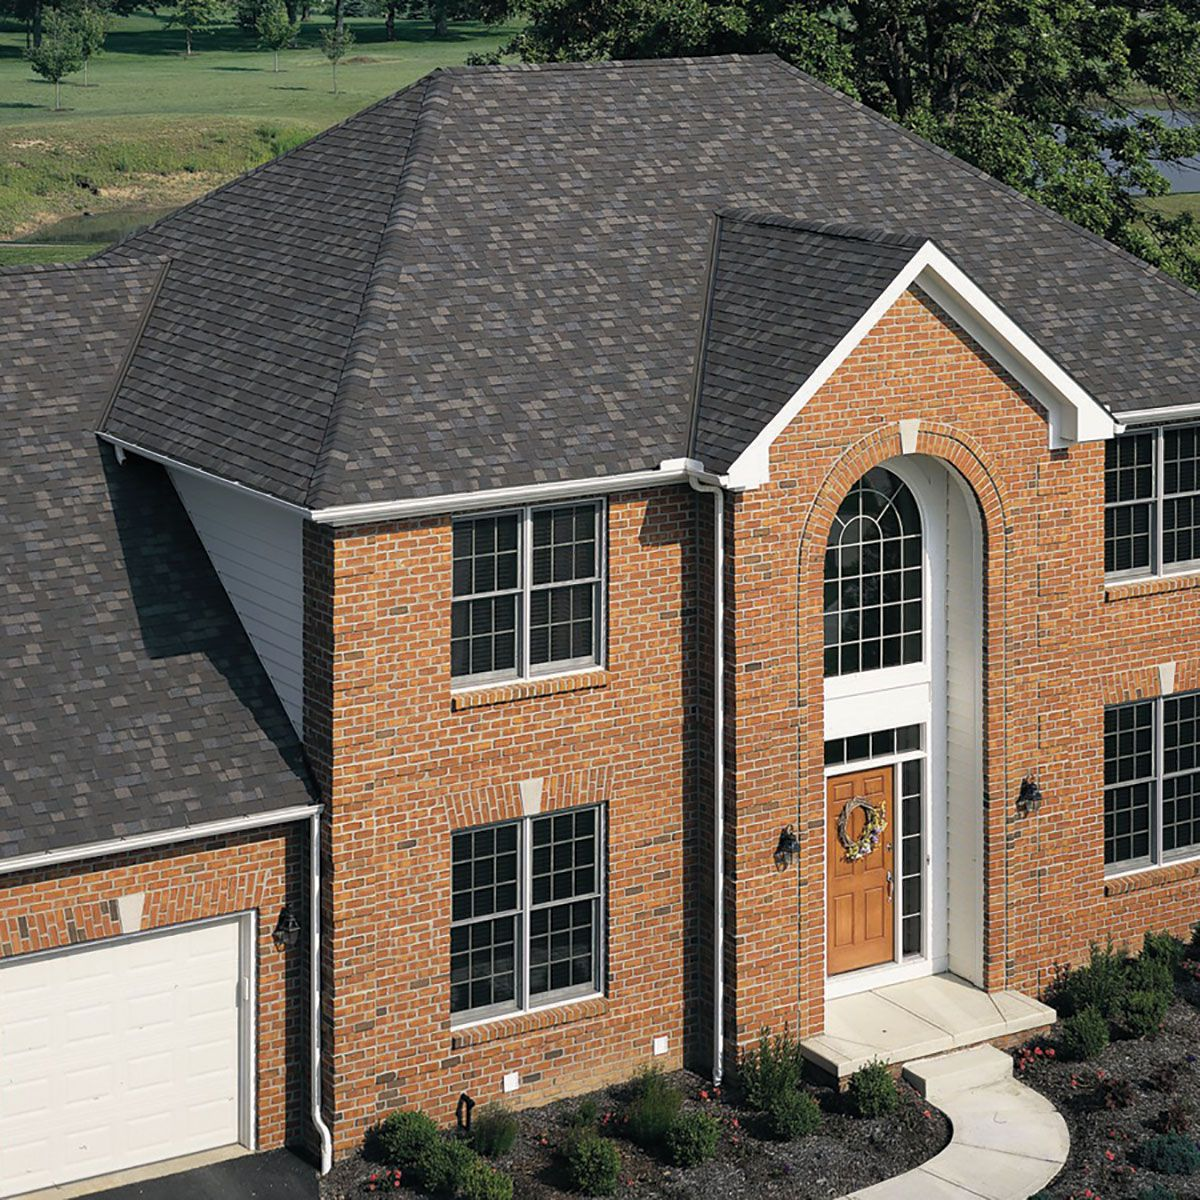 Certainteed Landmark Pro Wimsatt Building Materials Shingle